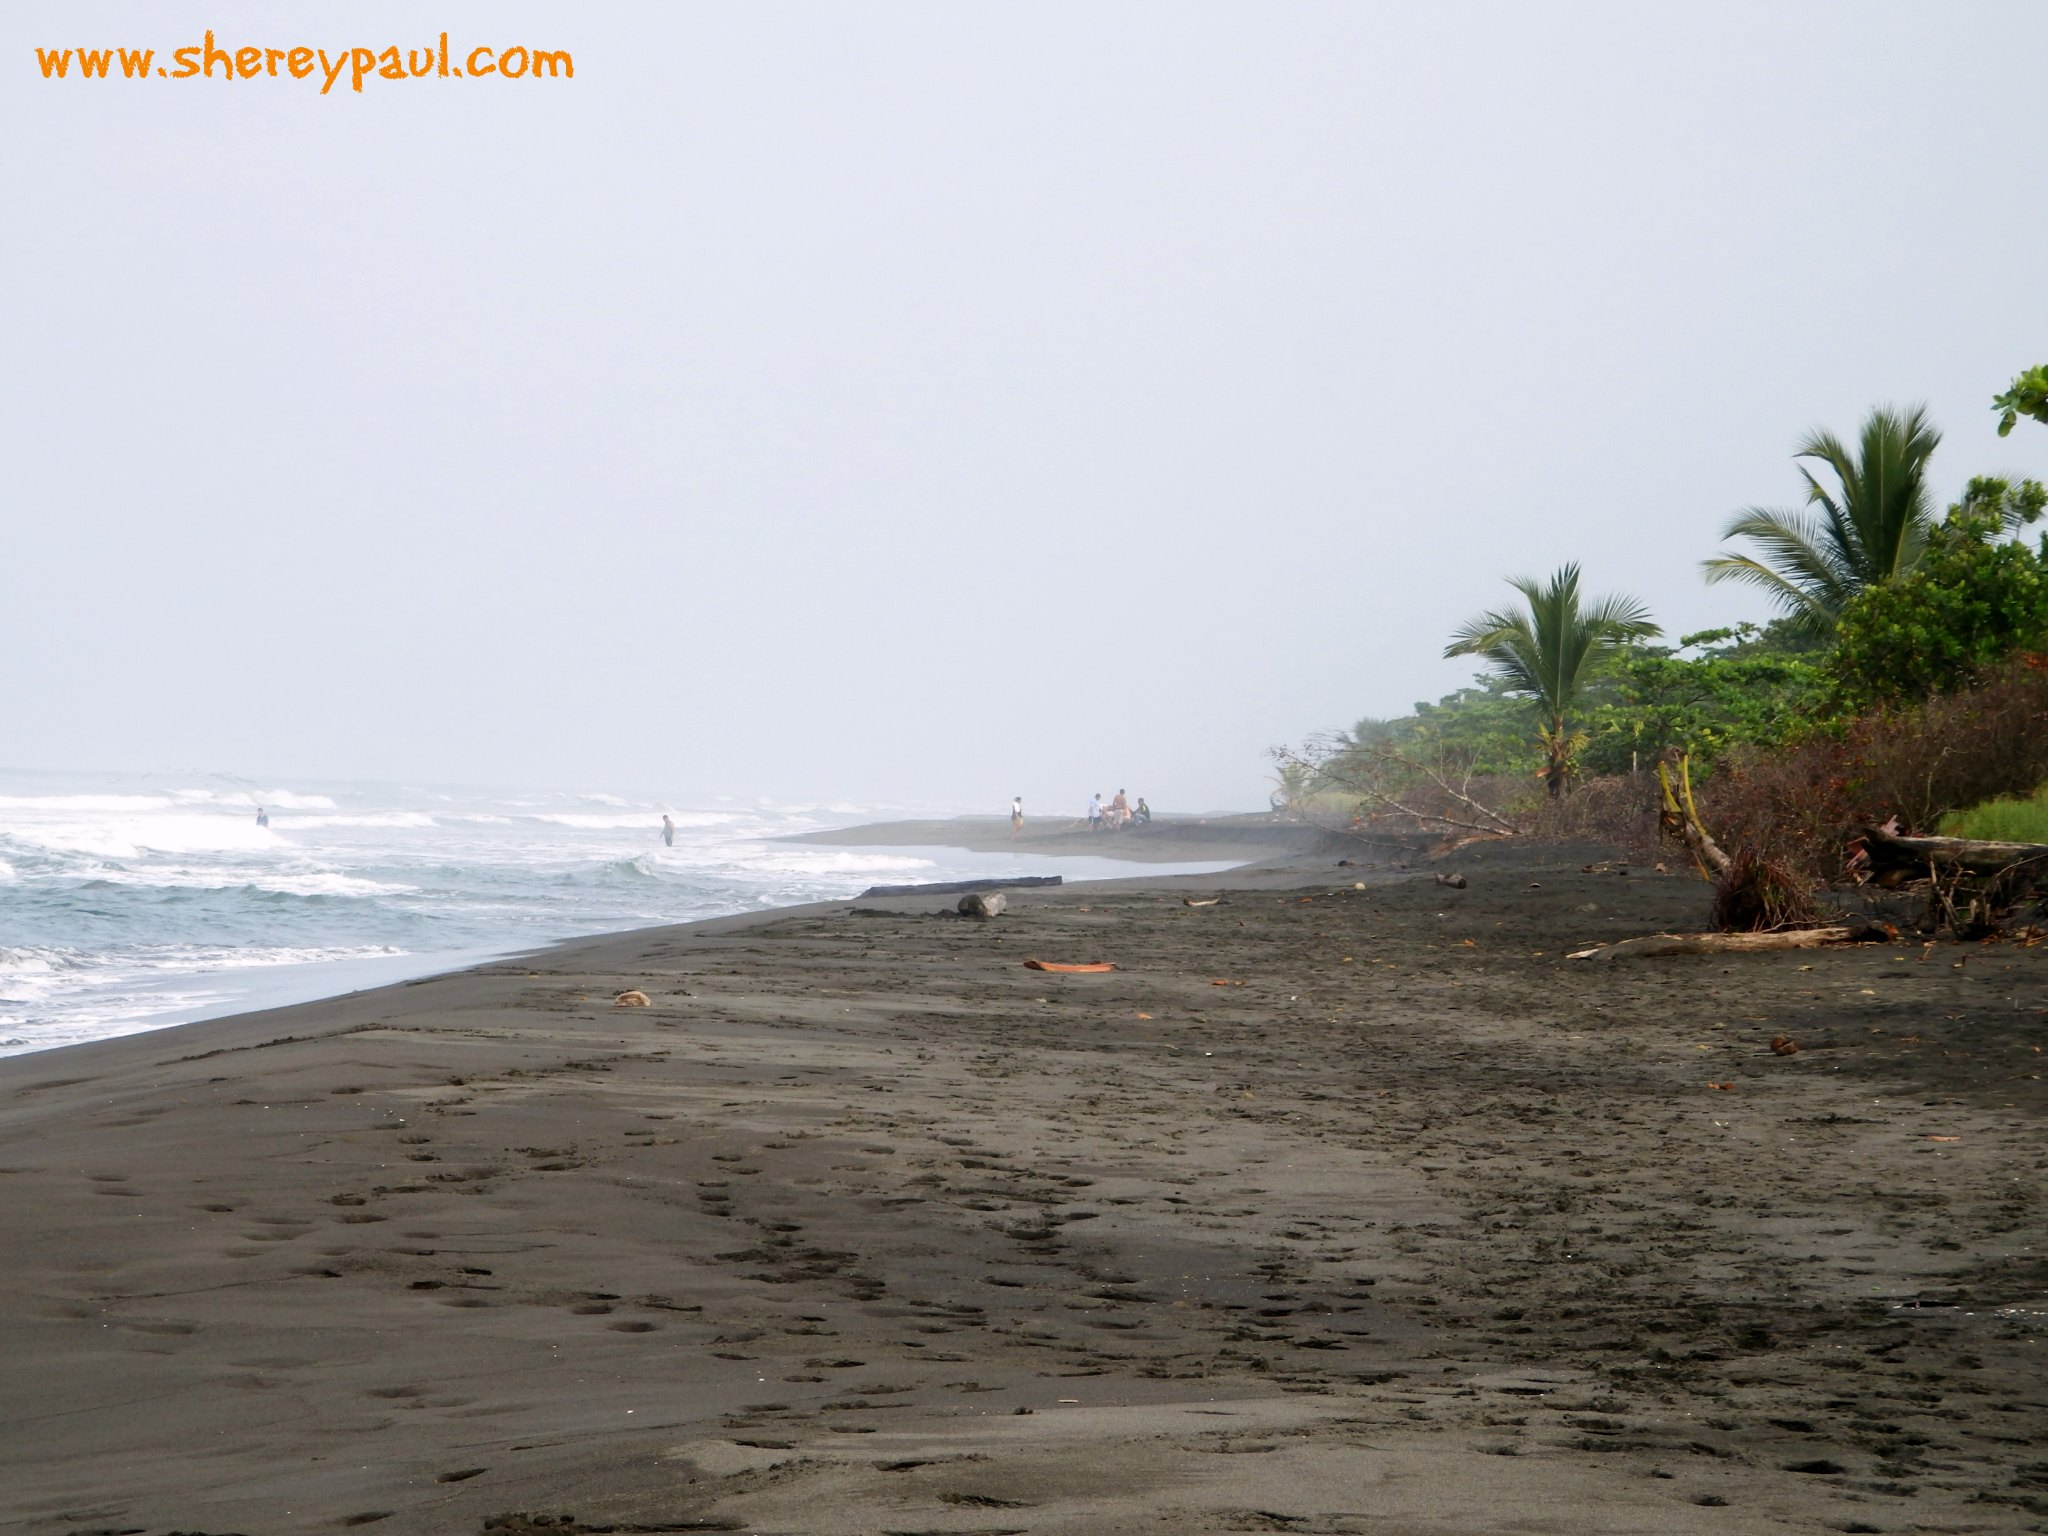 Beach of Parismina - The best place to see sea turtles in costa Rica without spending a fortune